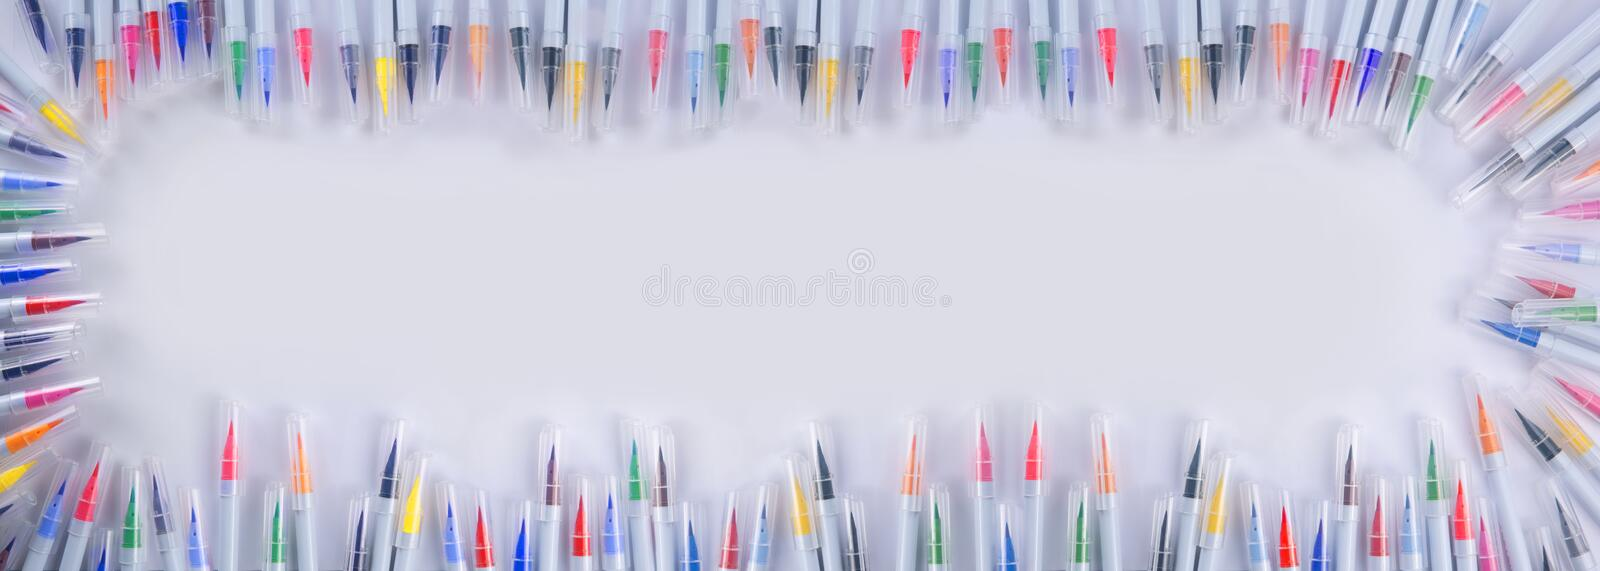 Many  brush pens and markers of different colors and shades are around the white sheet of the album stock photos